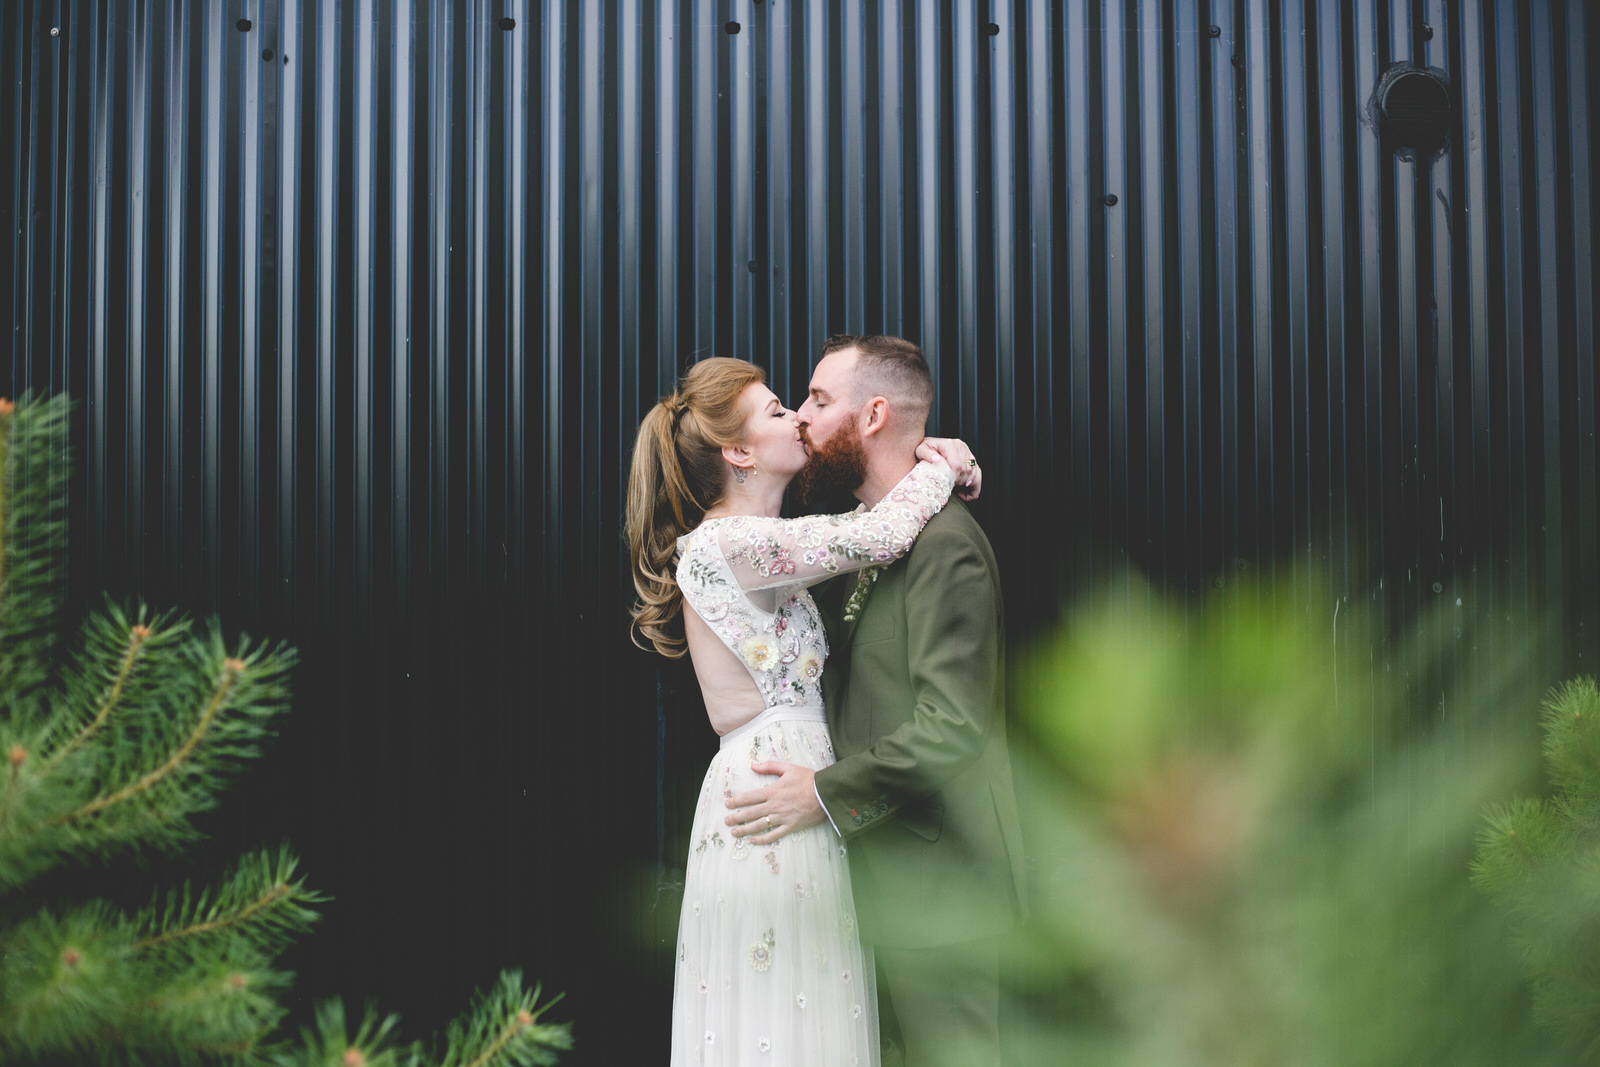 Alternative wedding photography Ireland - Mount Druid